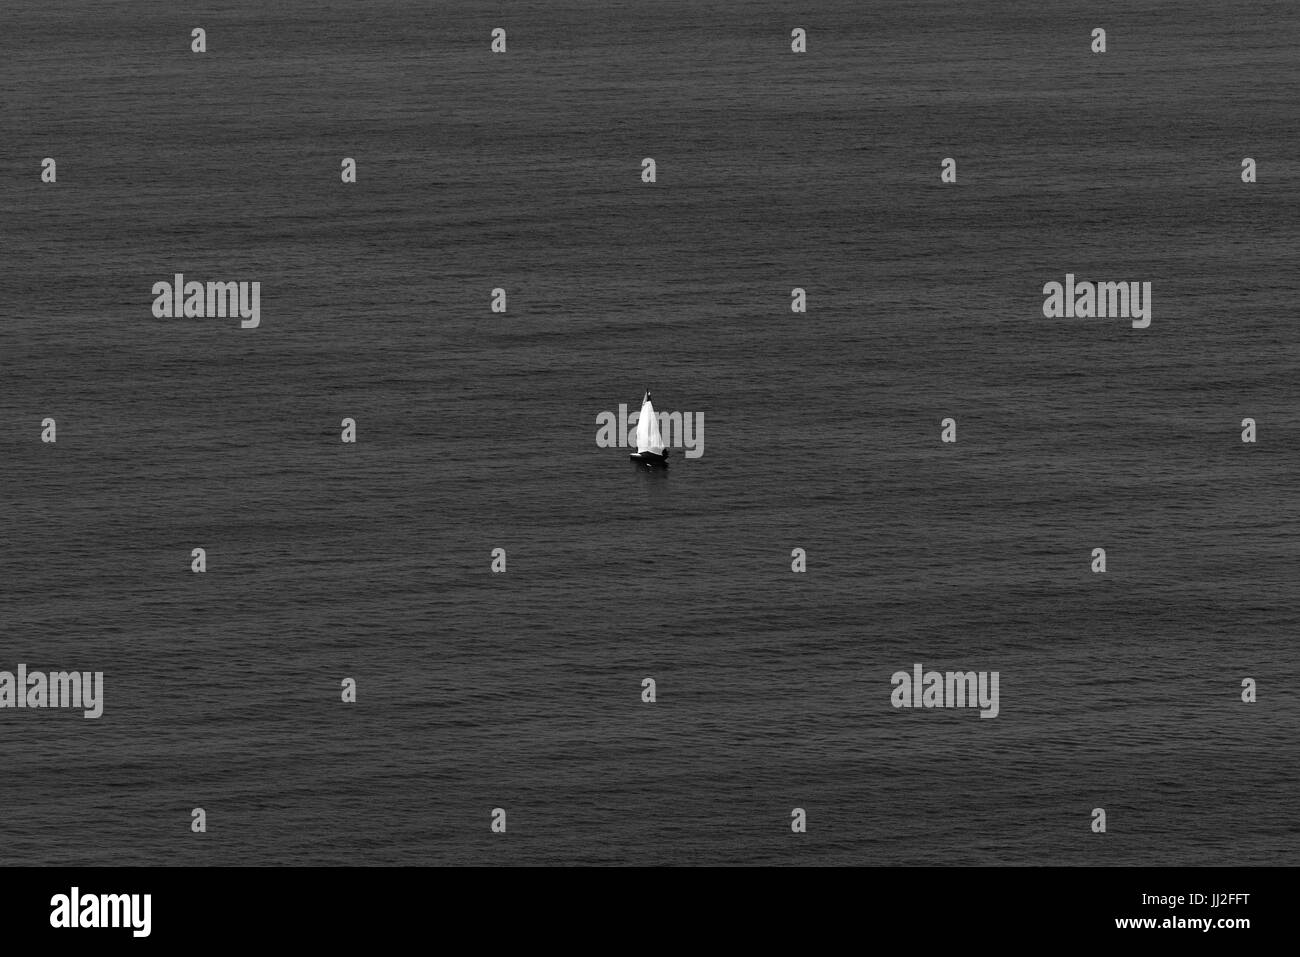 Black and white image of a lonely boat in a calm ocean (San Sebastian, Guipuzcoa, Basque country, Spain). Stock Photo